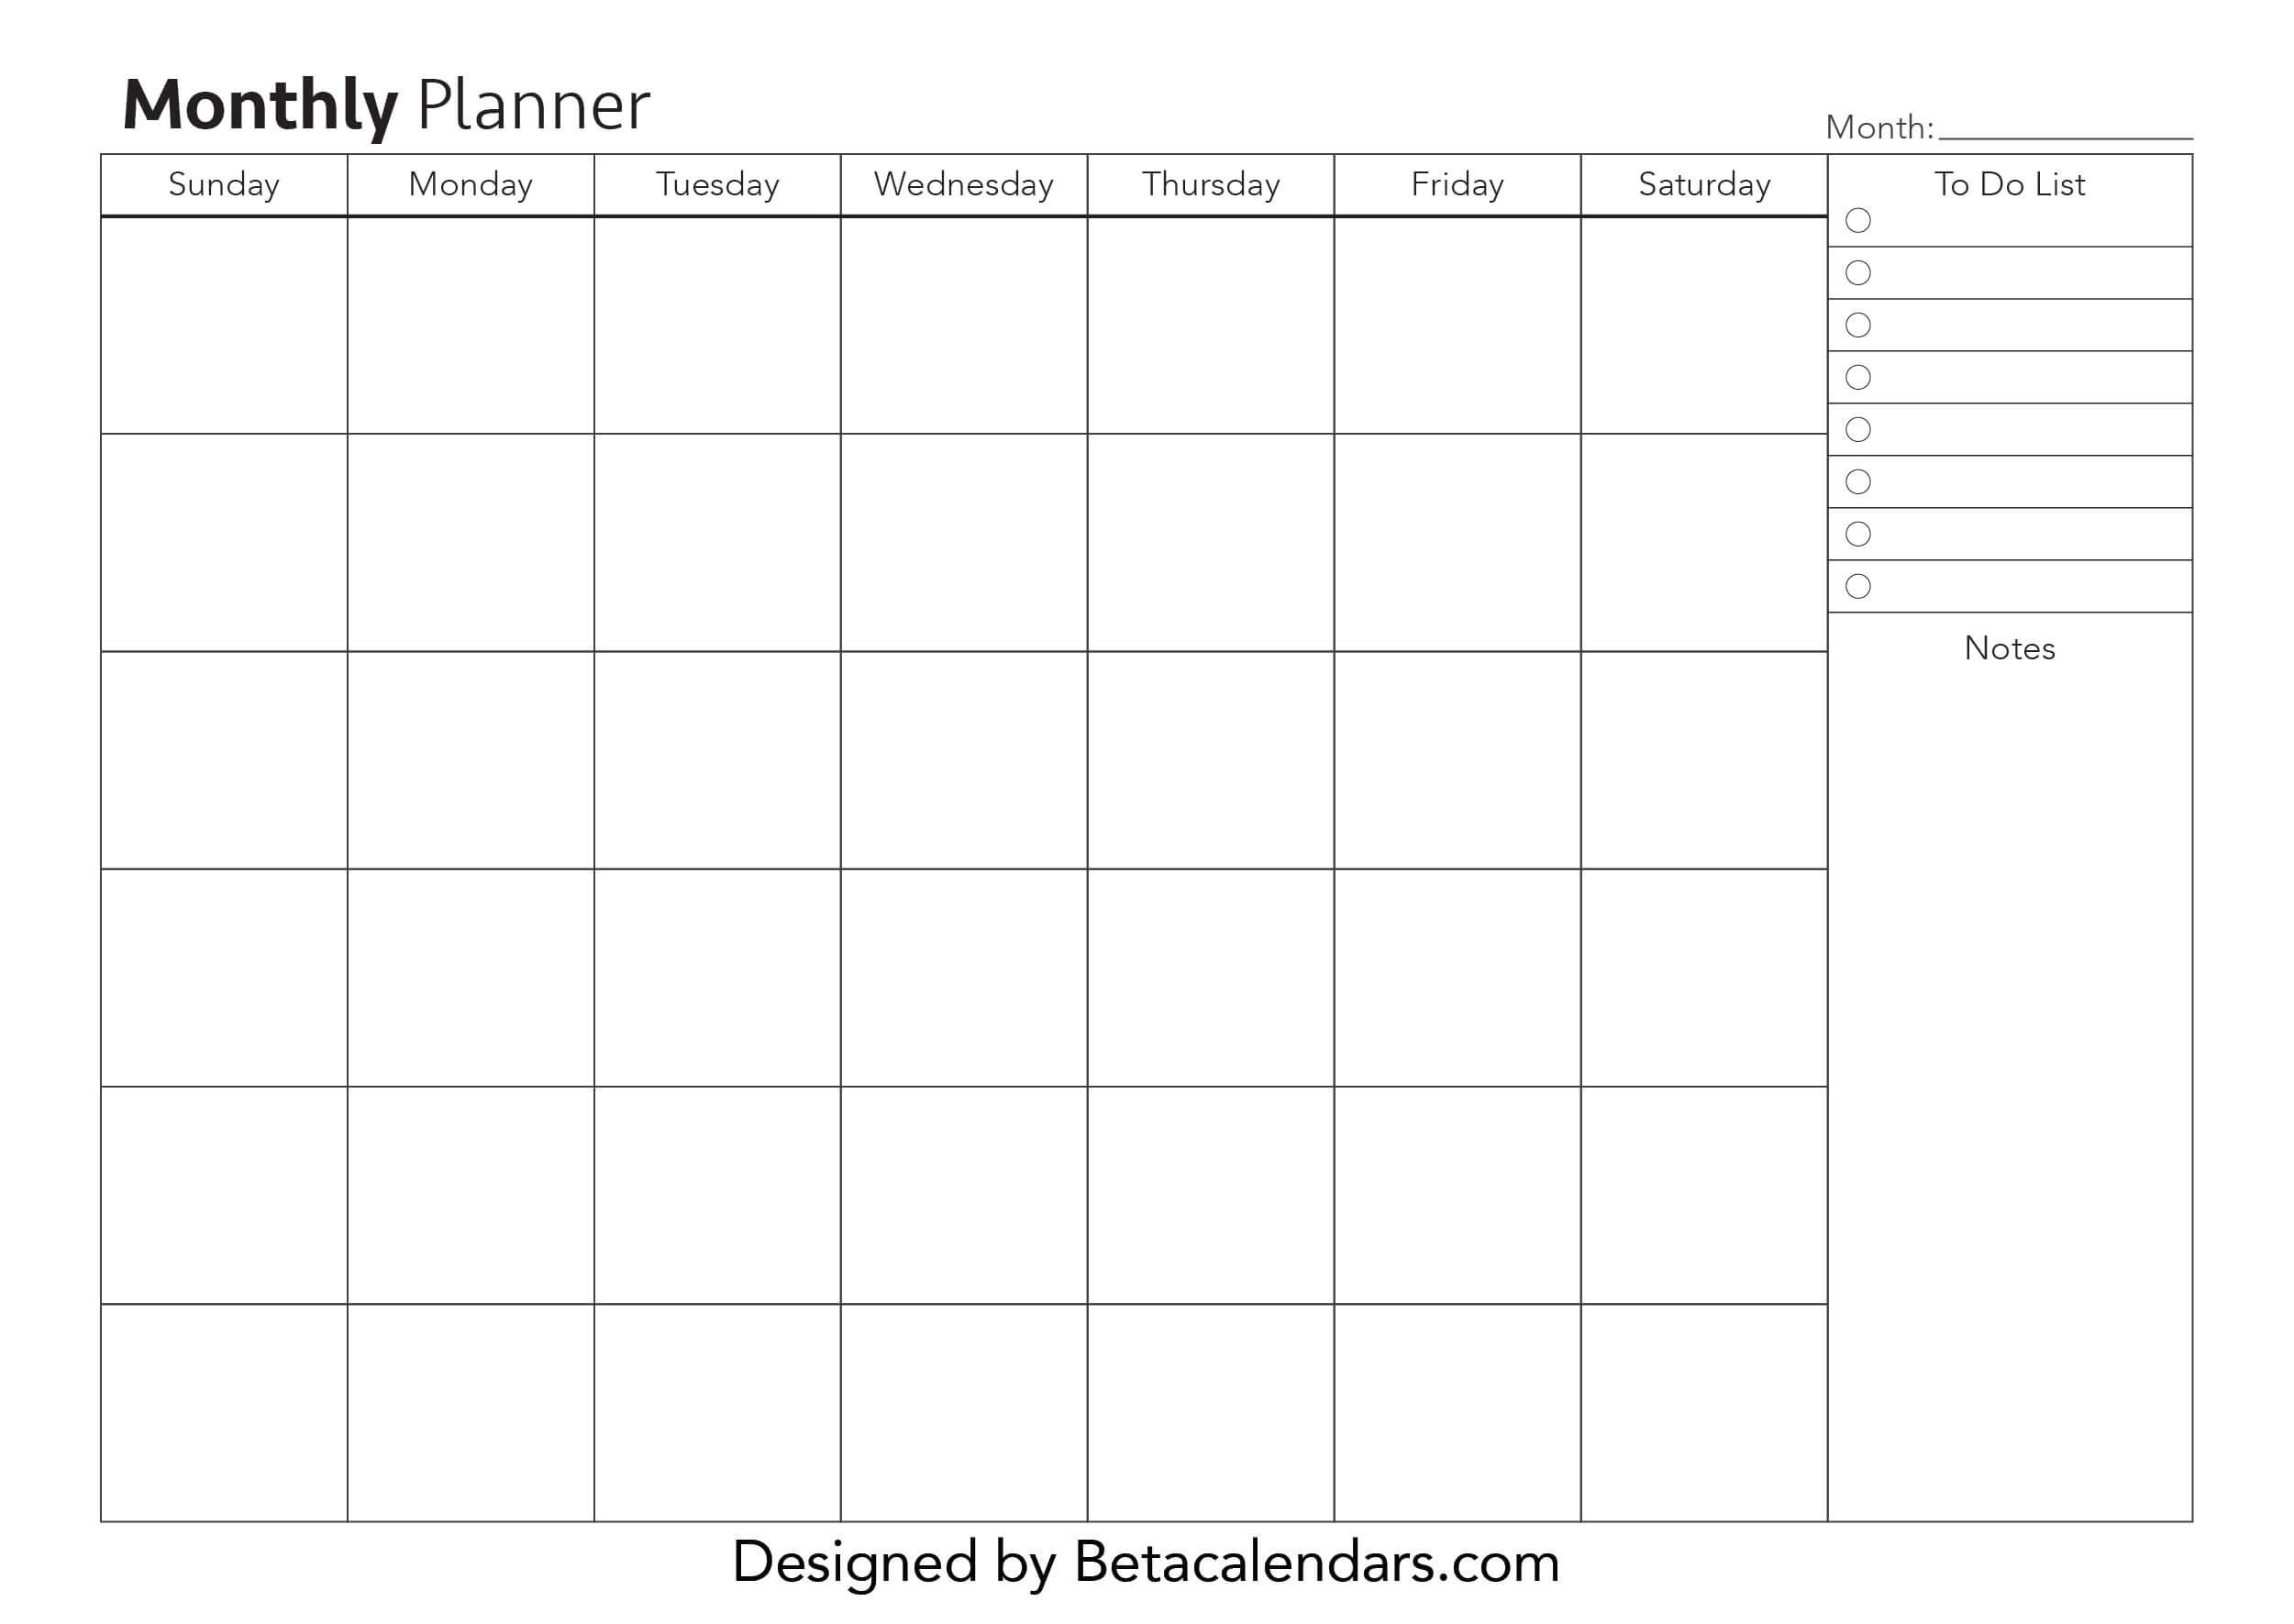 Free Printable Monthly Planner - Beta Calendars Exceptional Month At A Glance Blank Template